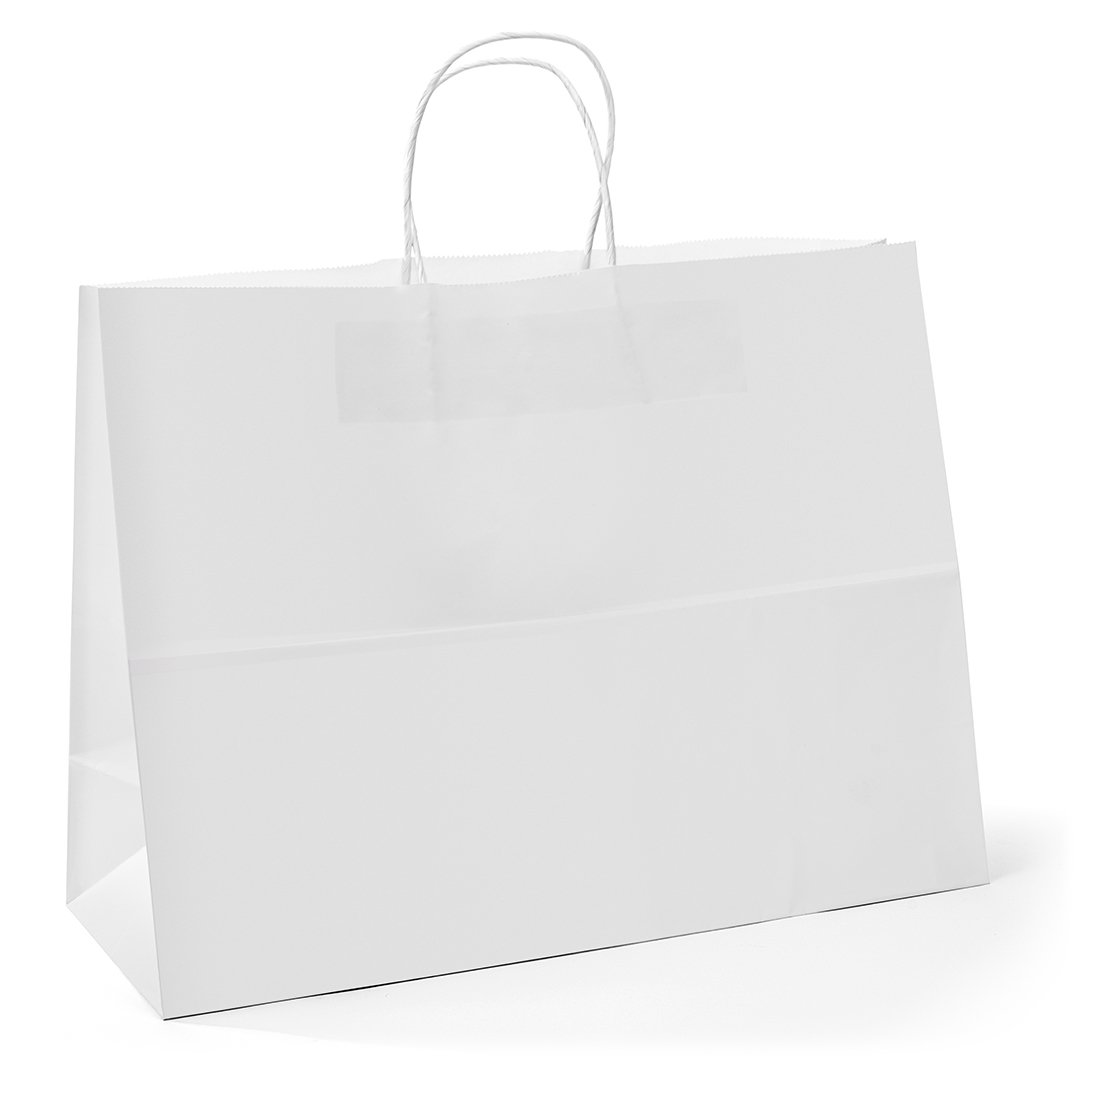 GSSUSA 16x6x12 Inches 100Pc Kraft Paper Bags with Handles Bulk White Paper Shopping Bags Grocery Bags Mechandise Retail Bags, 100% Recyclable Large Paper Gift Bags 100% Recyclable Paper